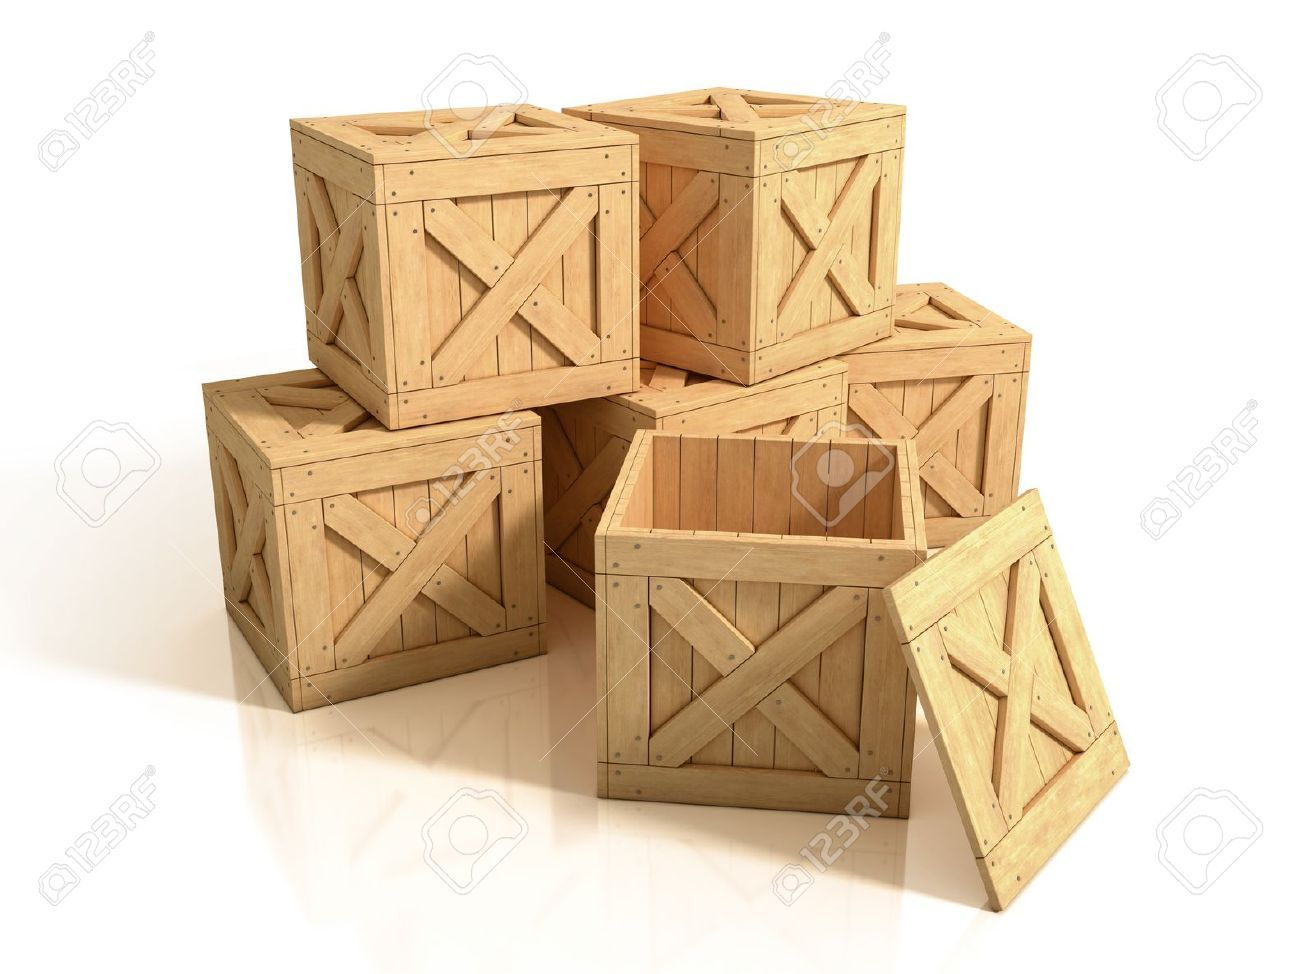 19776403 wooden crates isolated stock photo wooden cargo